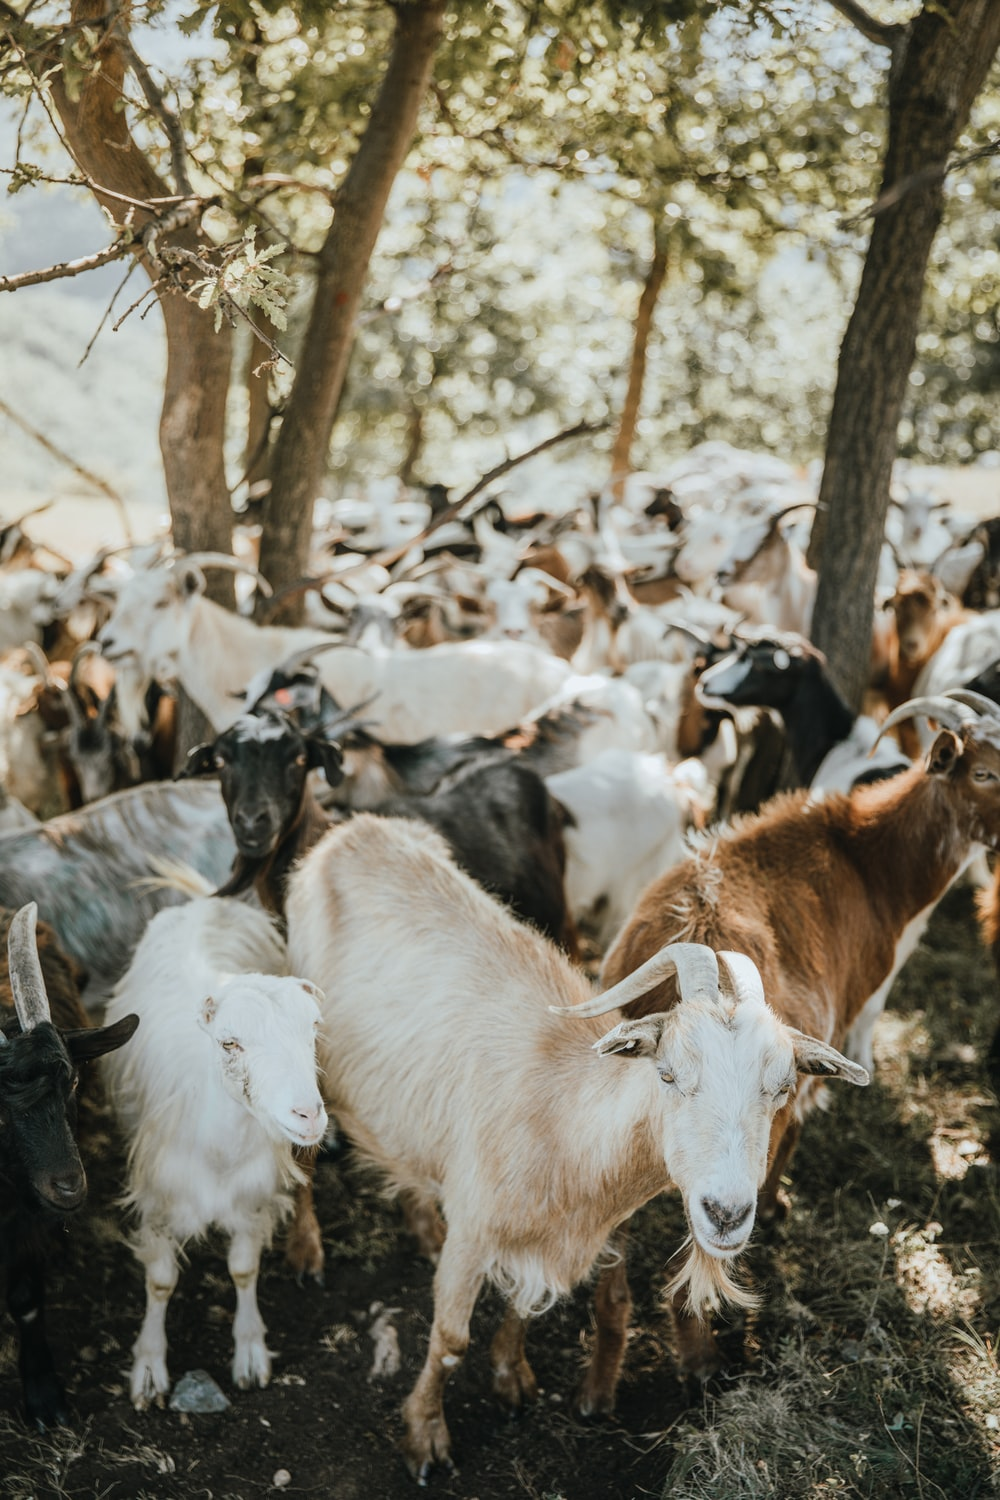 herd of goats on brown field during daytime